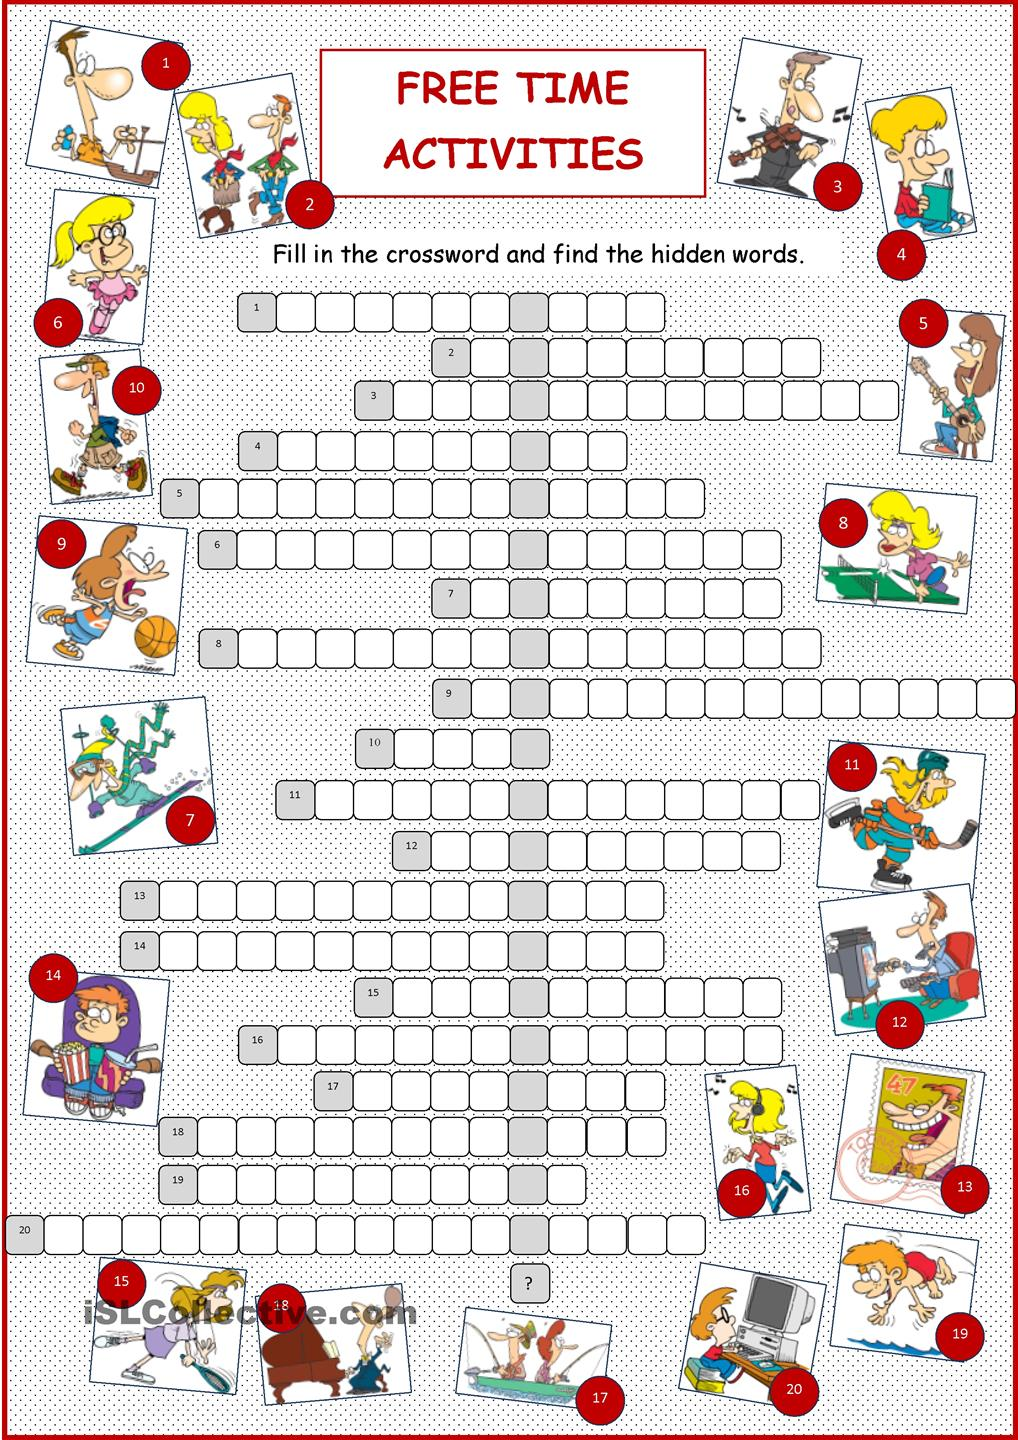 Vacation clipart free time activity Crossword Free Free TIME Crossword